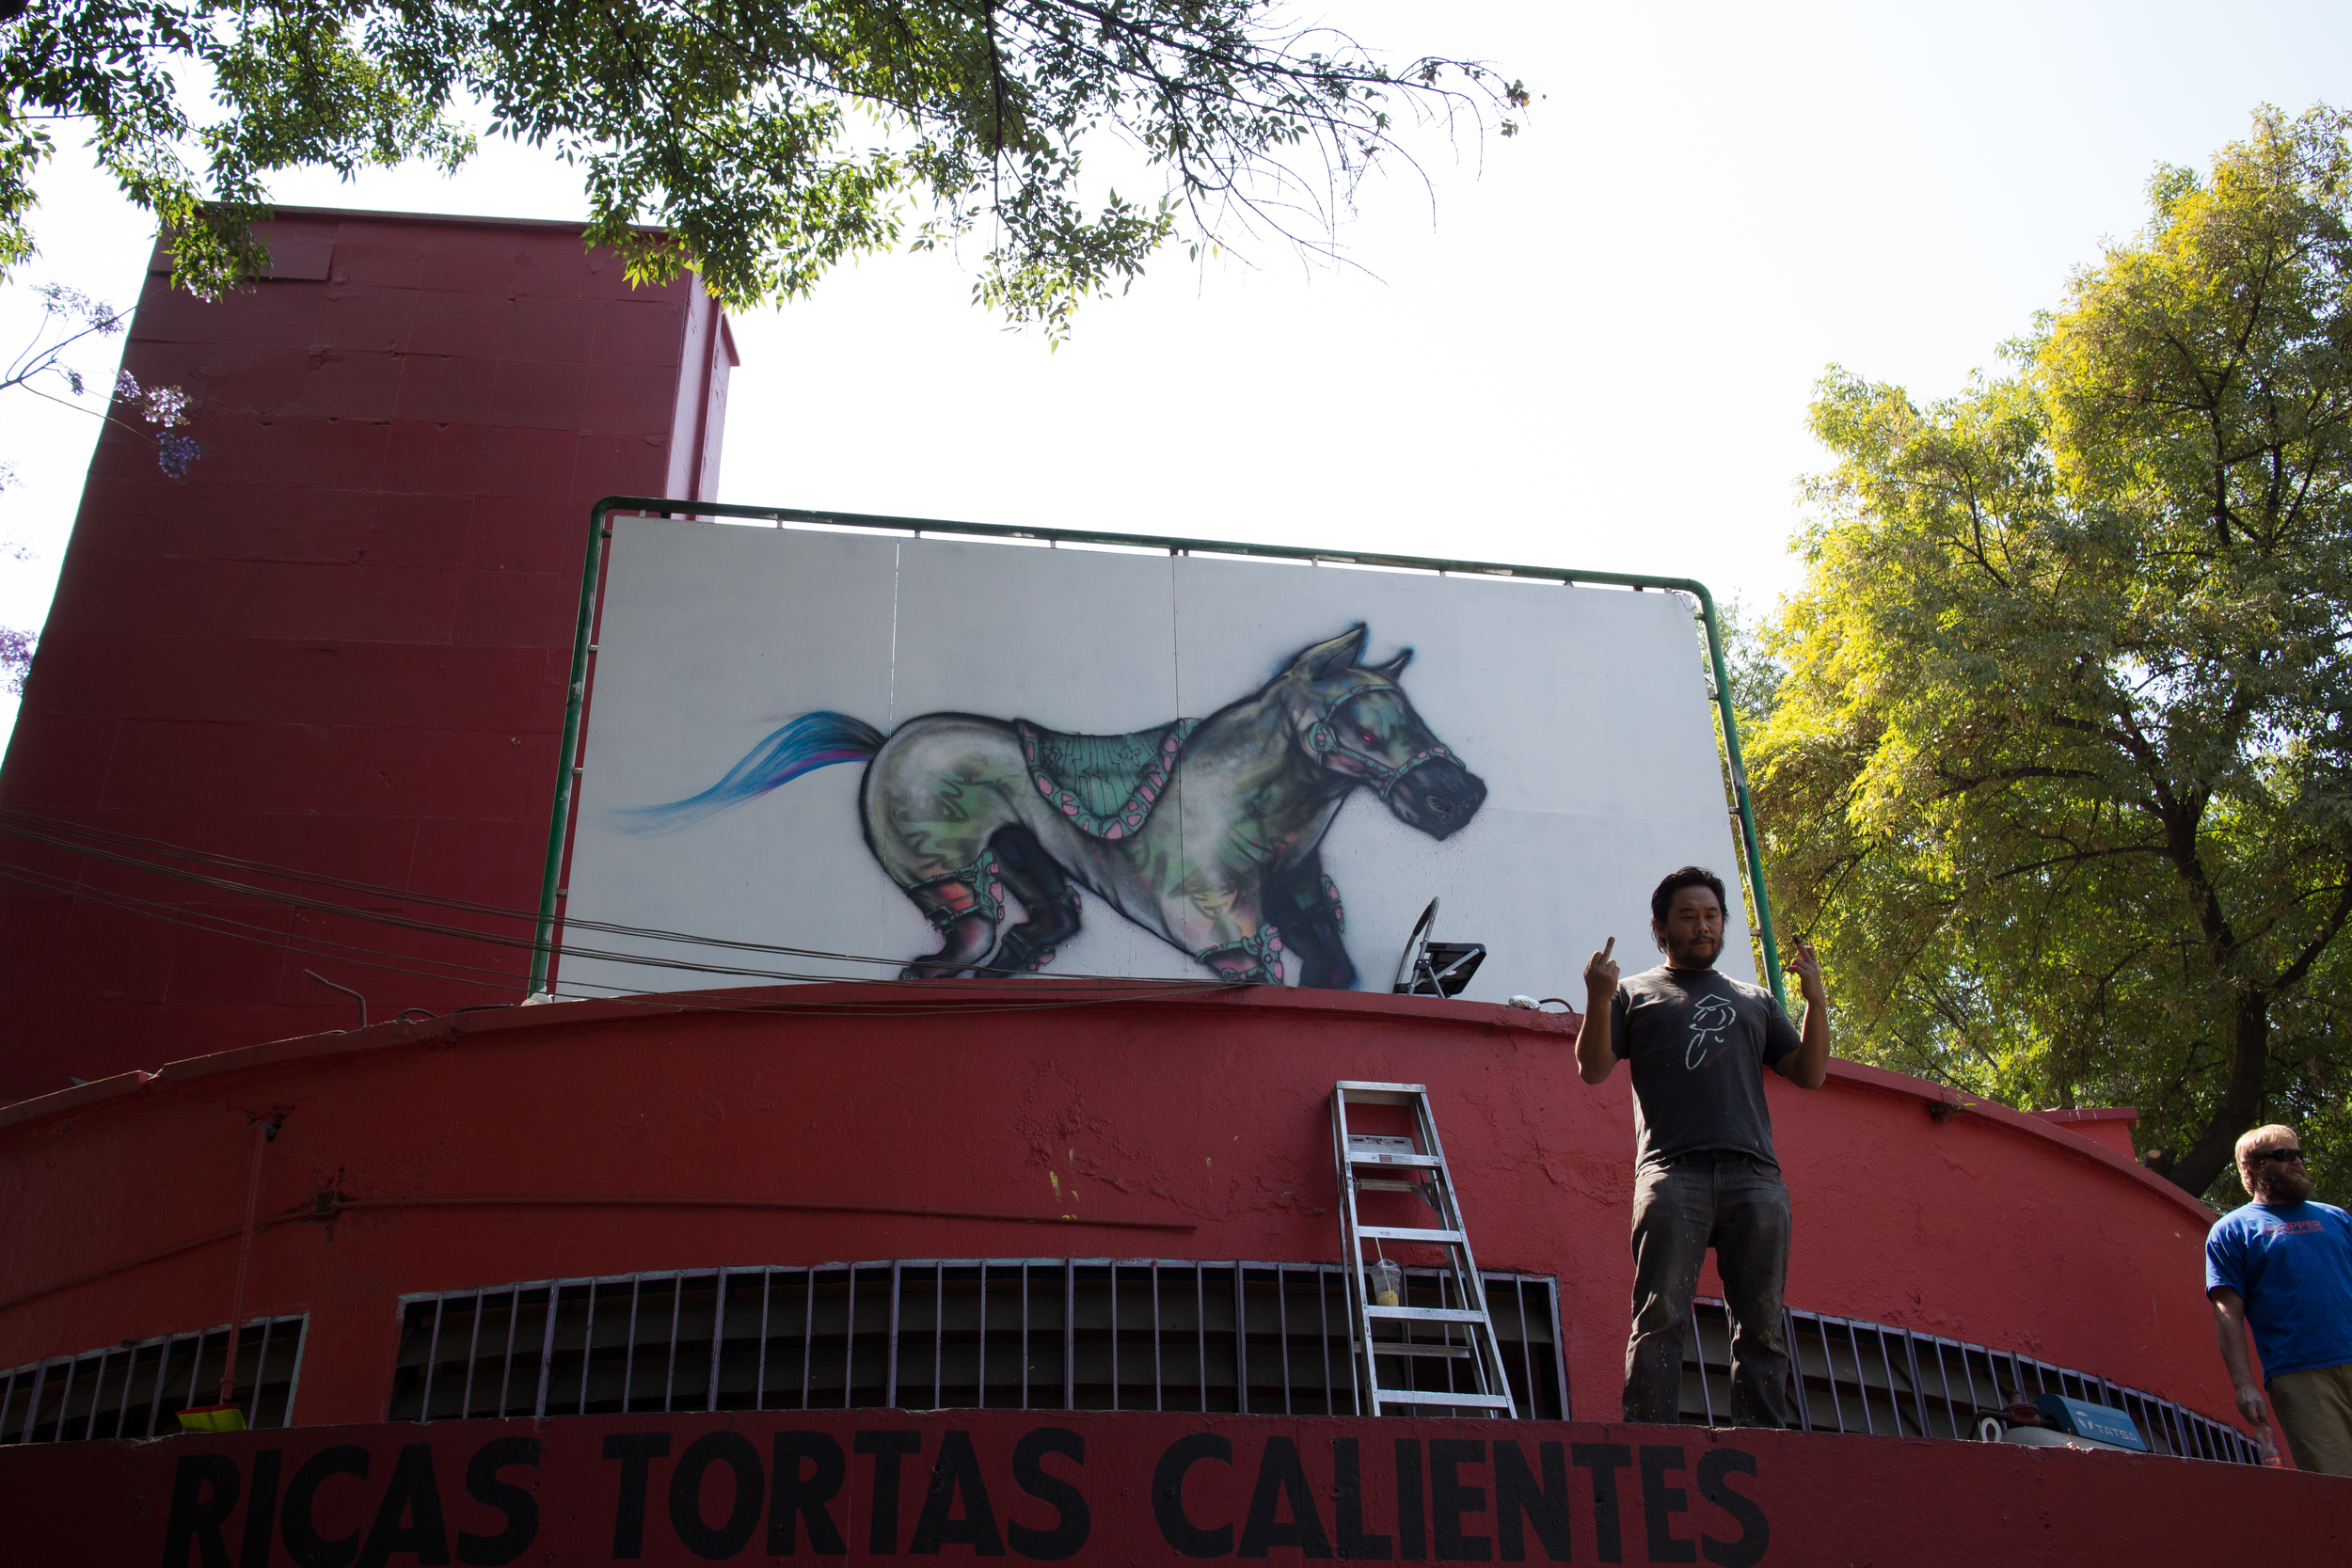 david-choe-mexico-city-street-art-2013-3.jpg